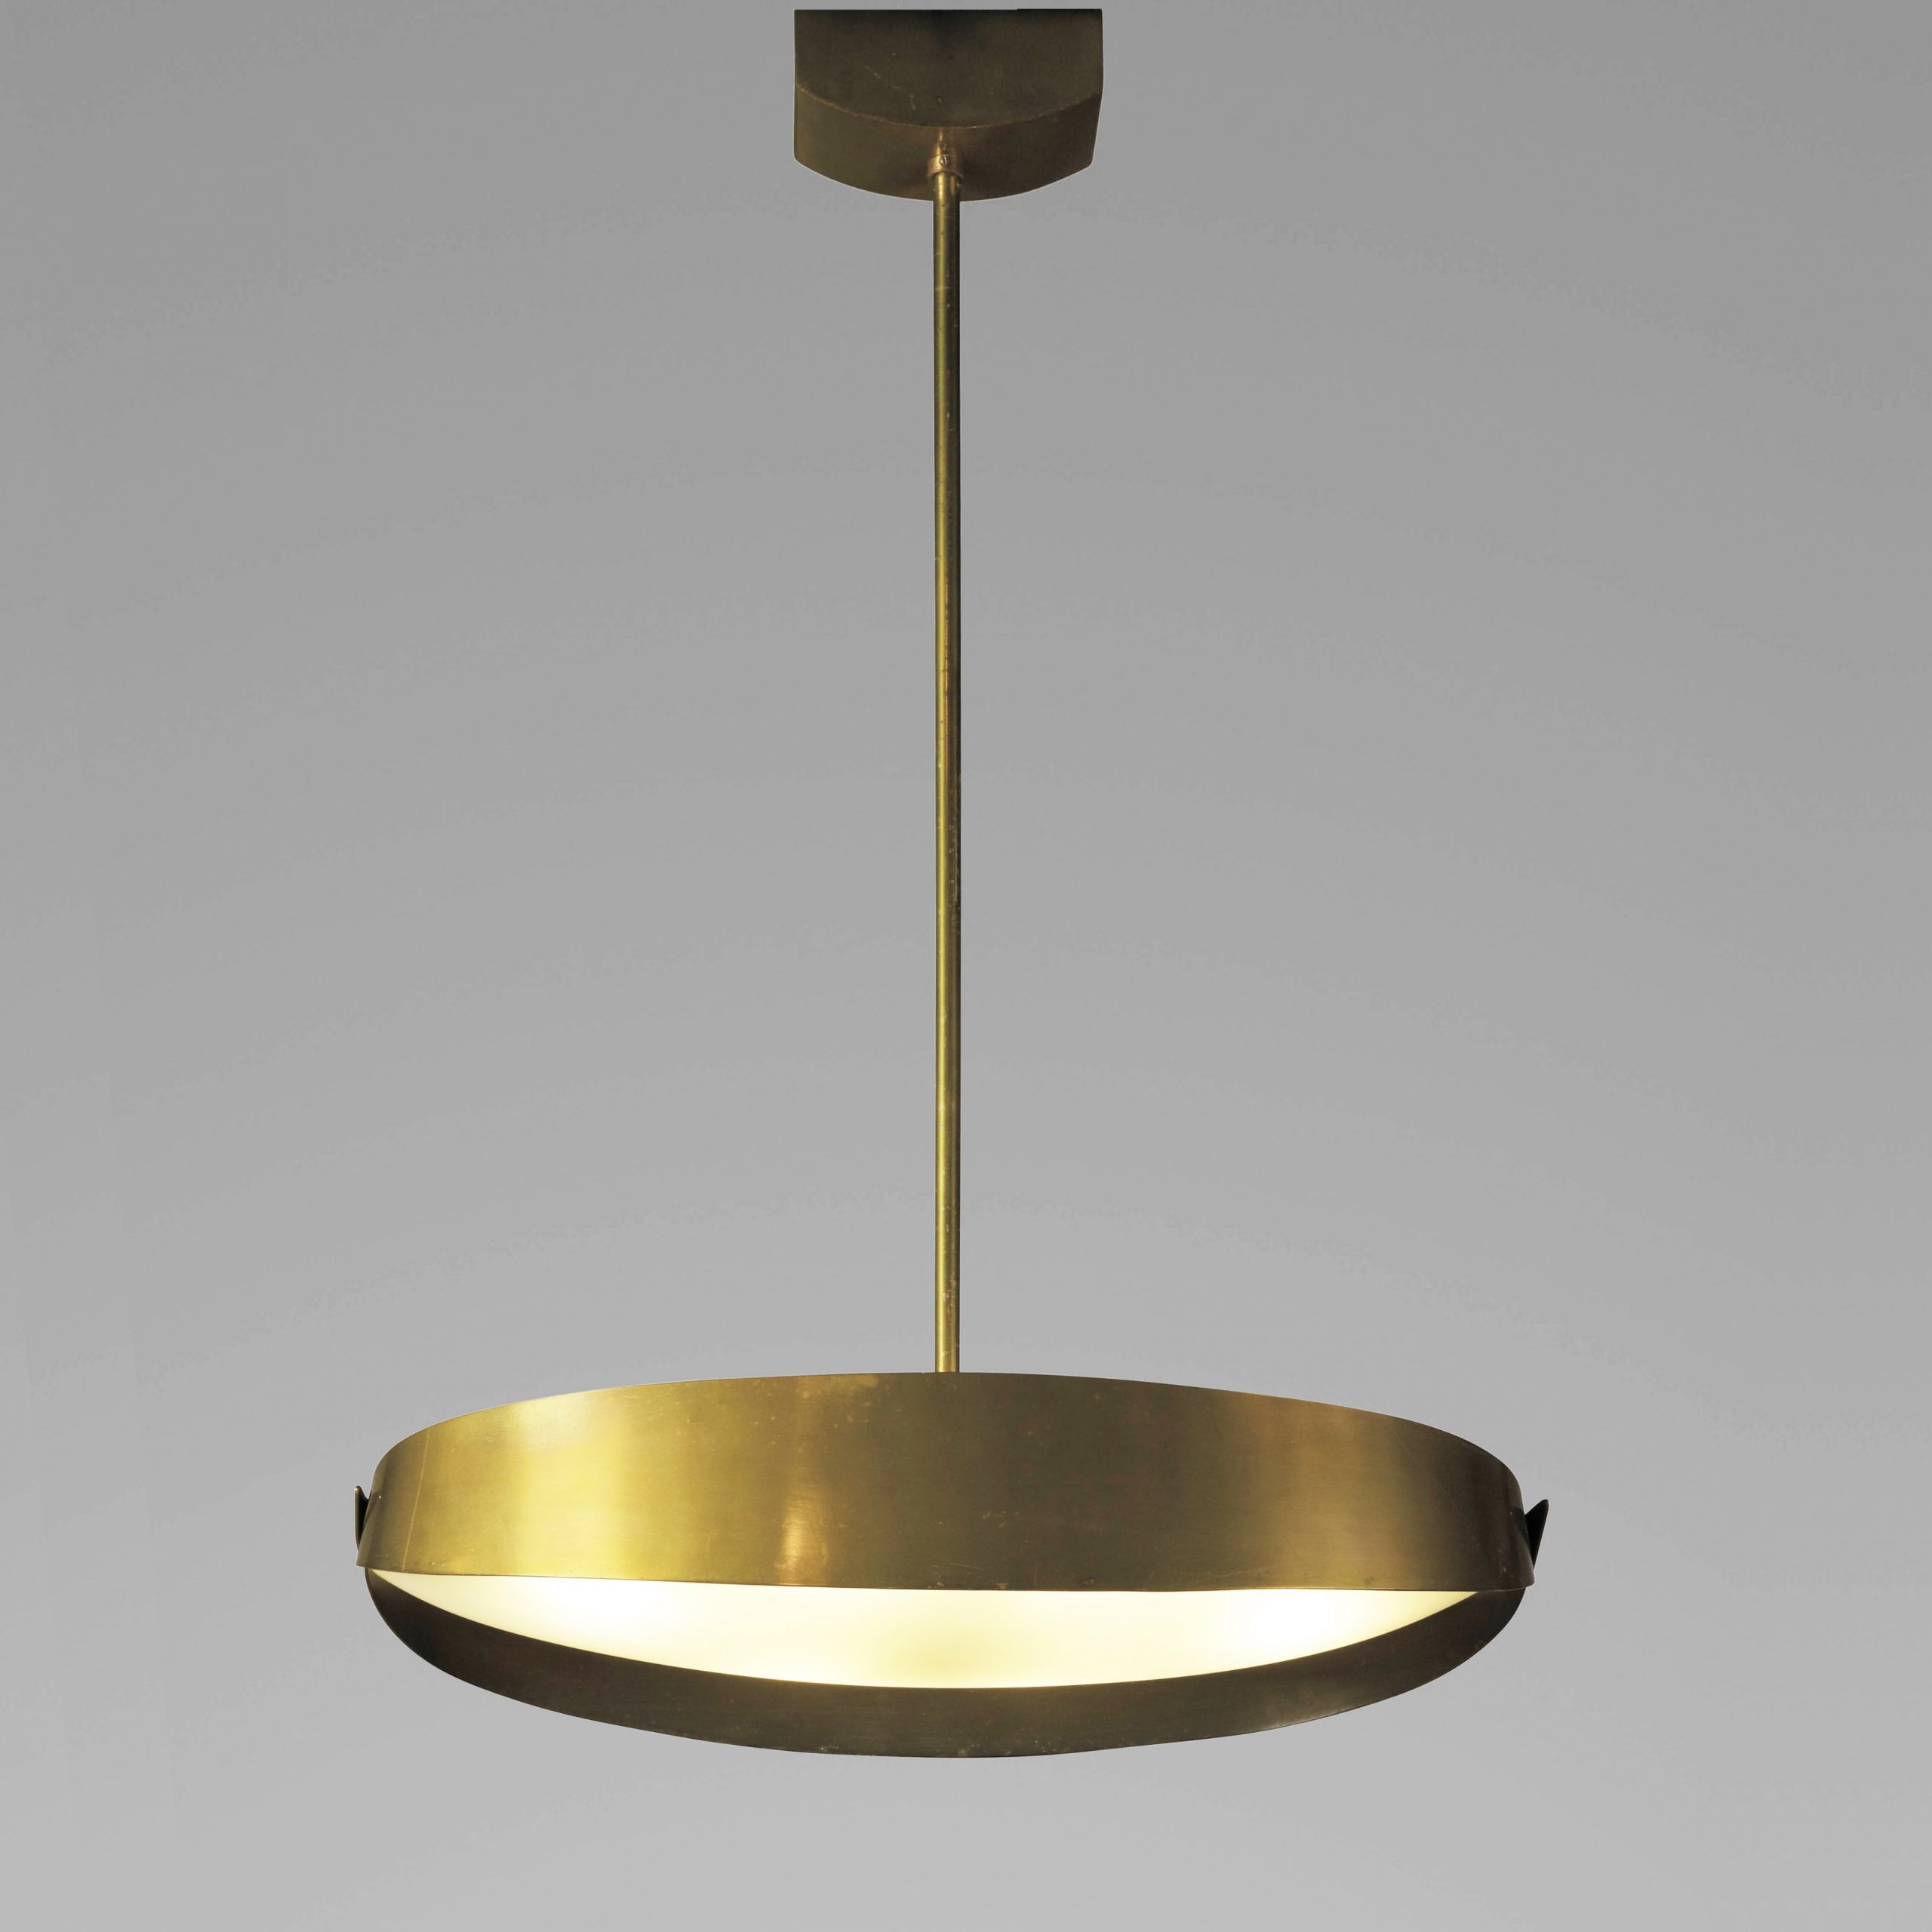 Max Ingrand |                                  Ceiling light mod. 1874 by Fontana Arte